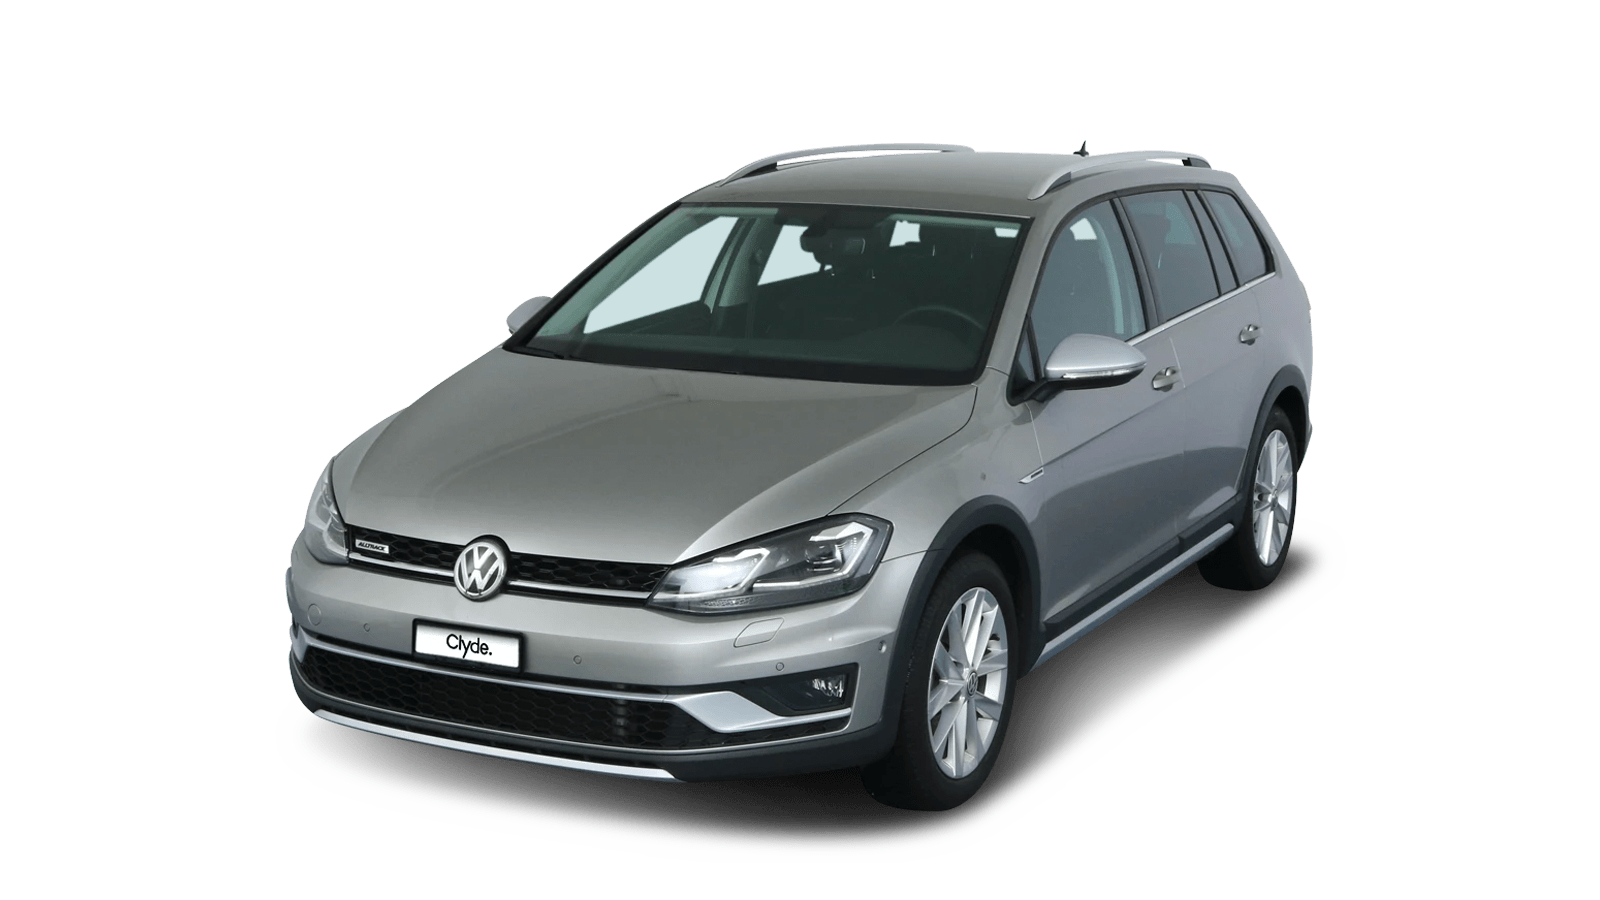 VW Golf Variant Alltrack Silver front - Clyde car subscription